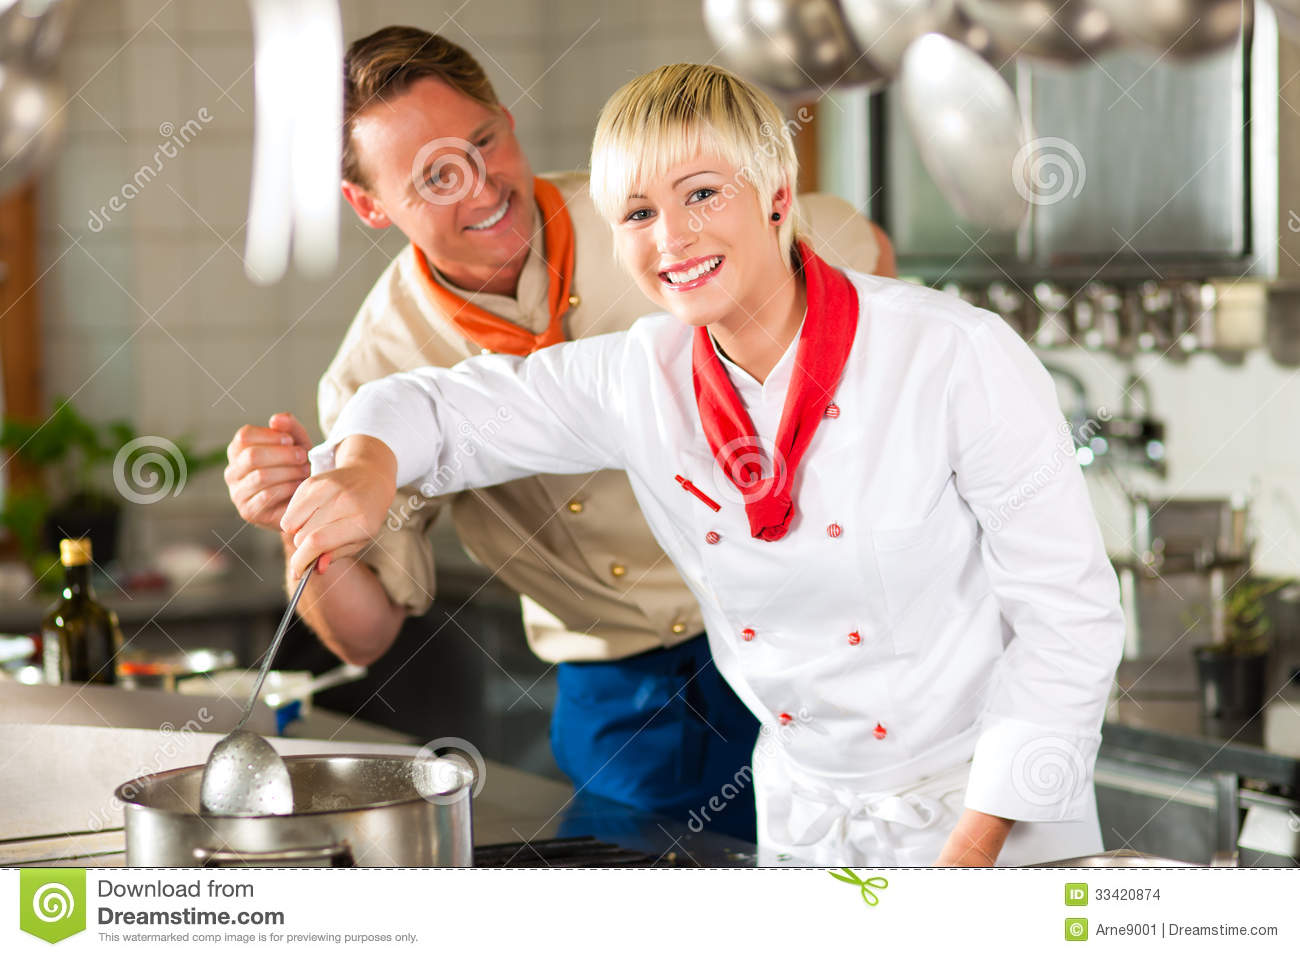 Teamwork In A Commercial Kitchen